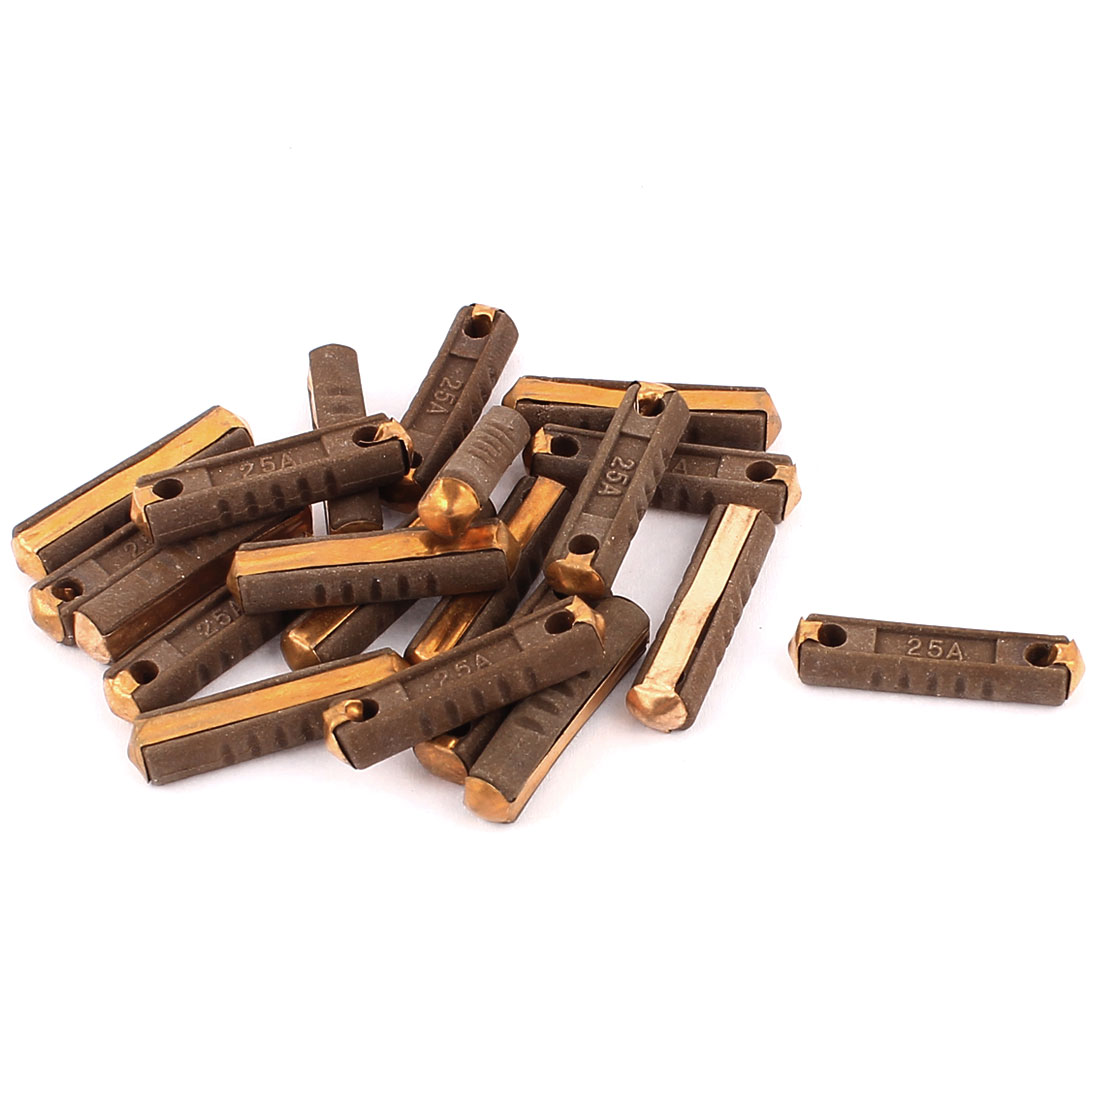 20 Pcs DC 32V 25A Low Breaking Capacity 30x6x4.5mm Ceramic Fuses Brown